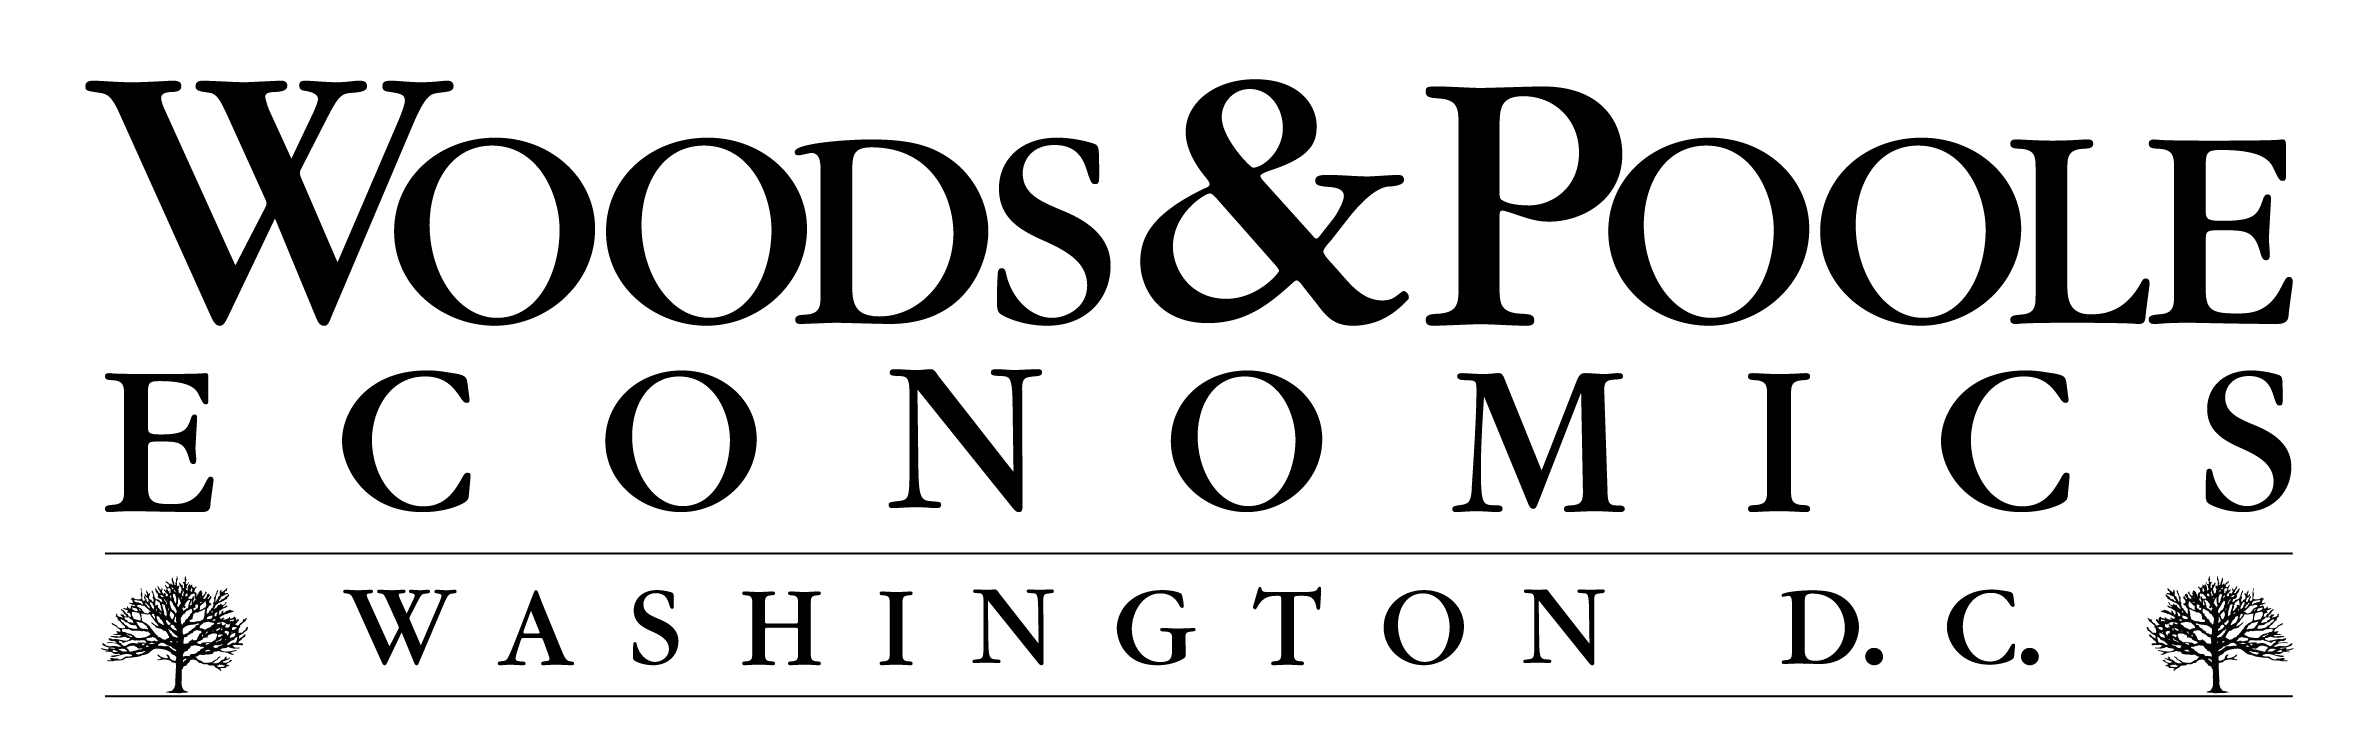 CINCINNATI-WILMINGTON-MAYSVILLE OH-KY-IN (FIPS 178) | Woods & Poole Economics, Inc